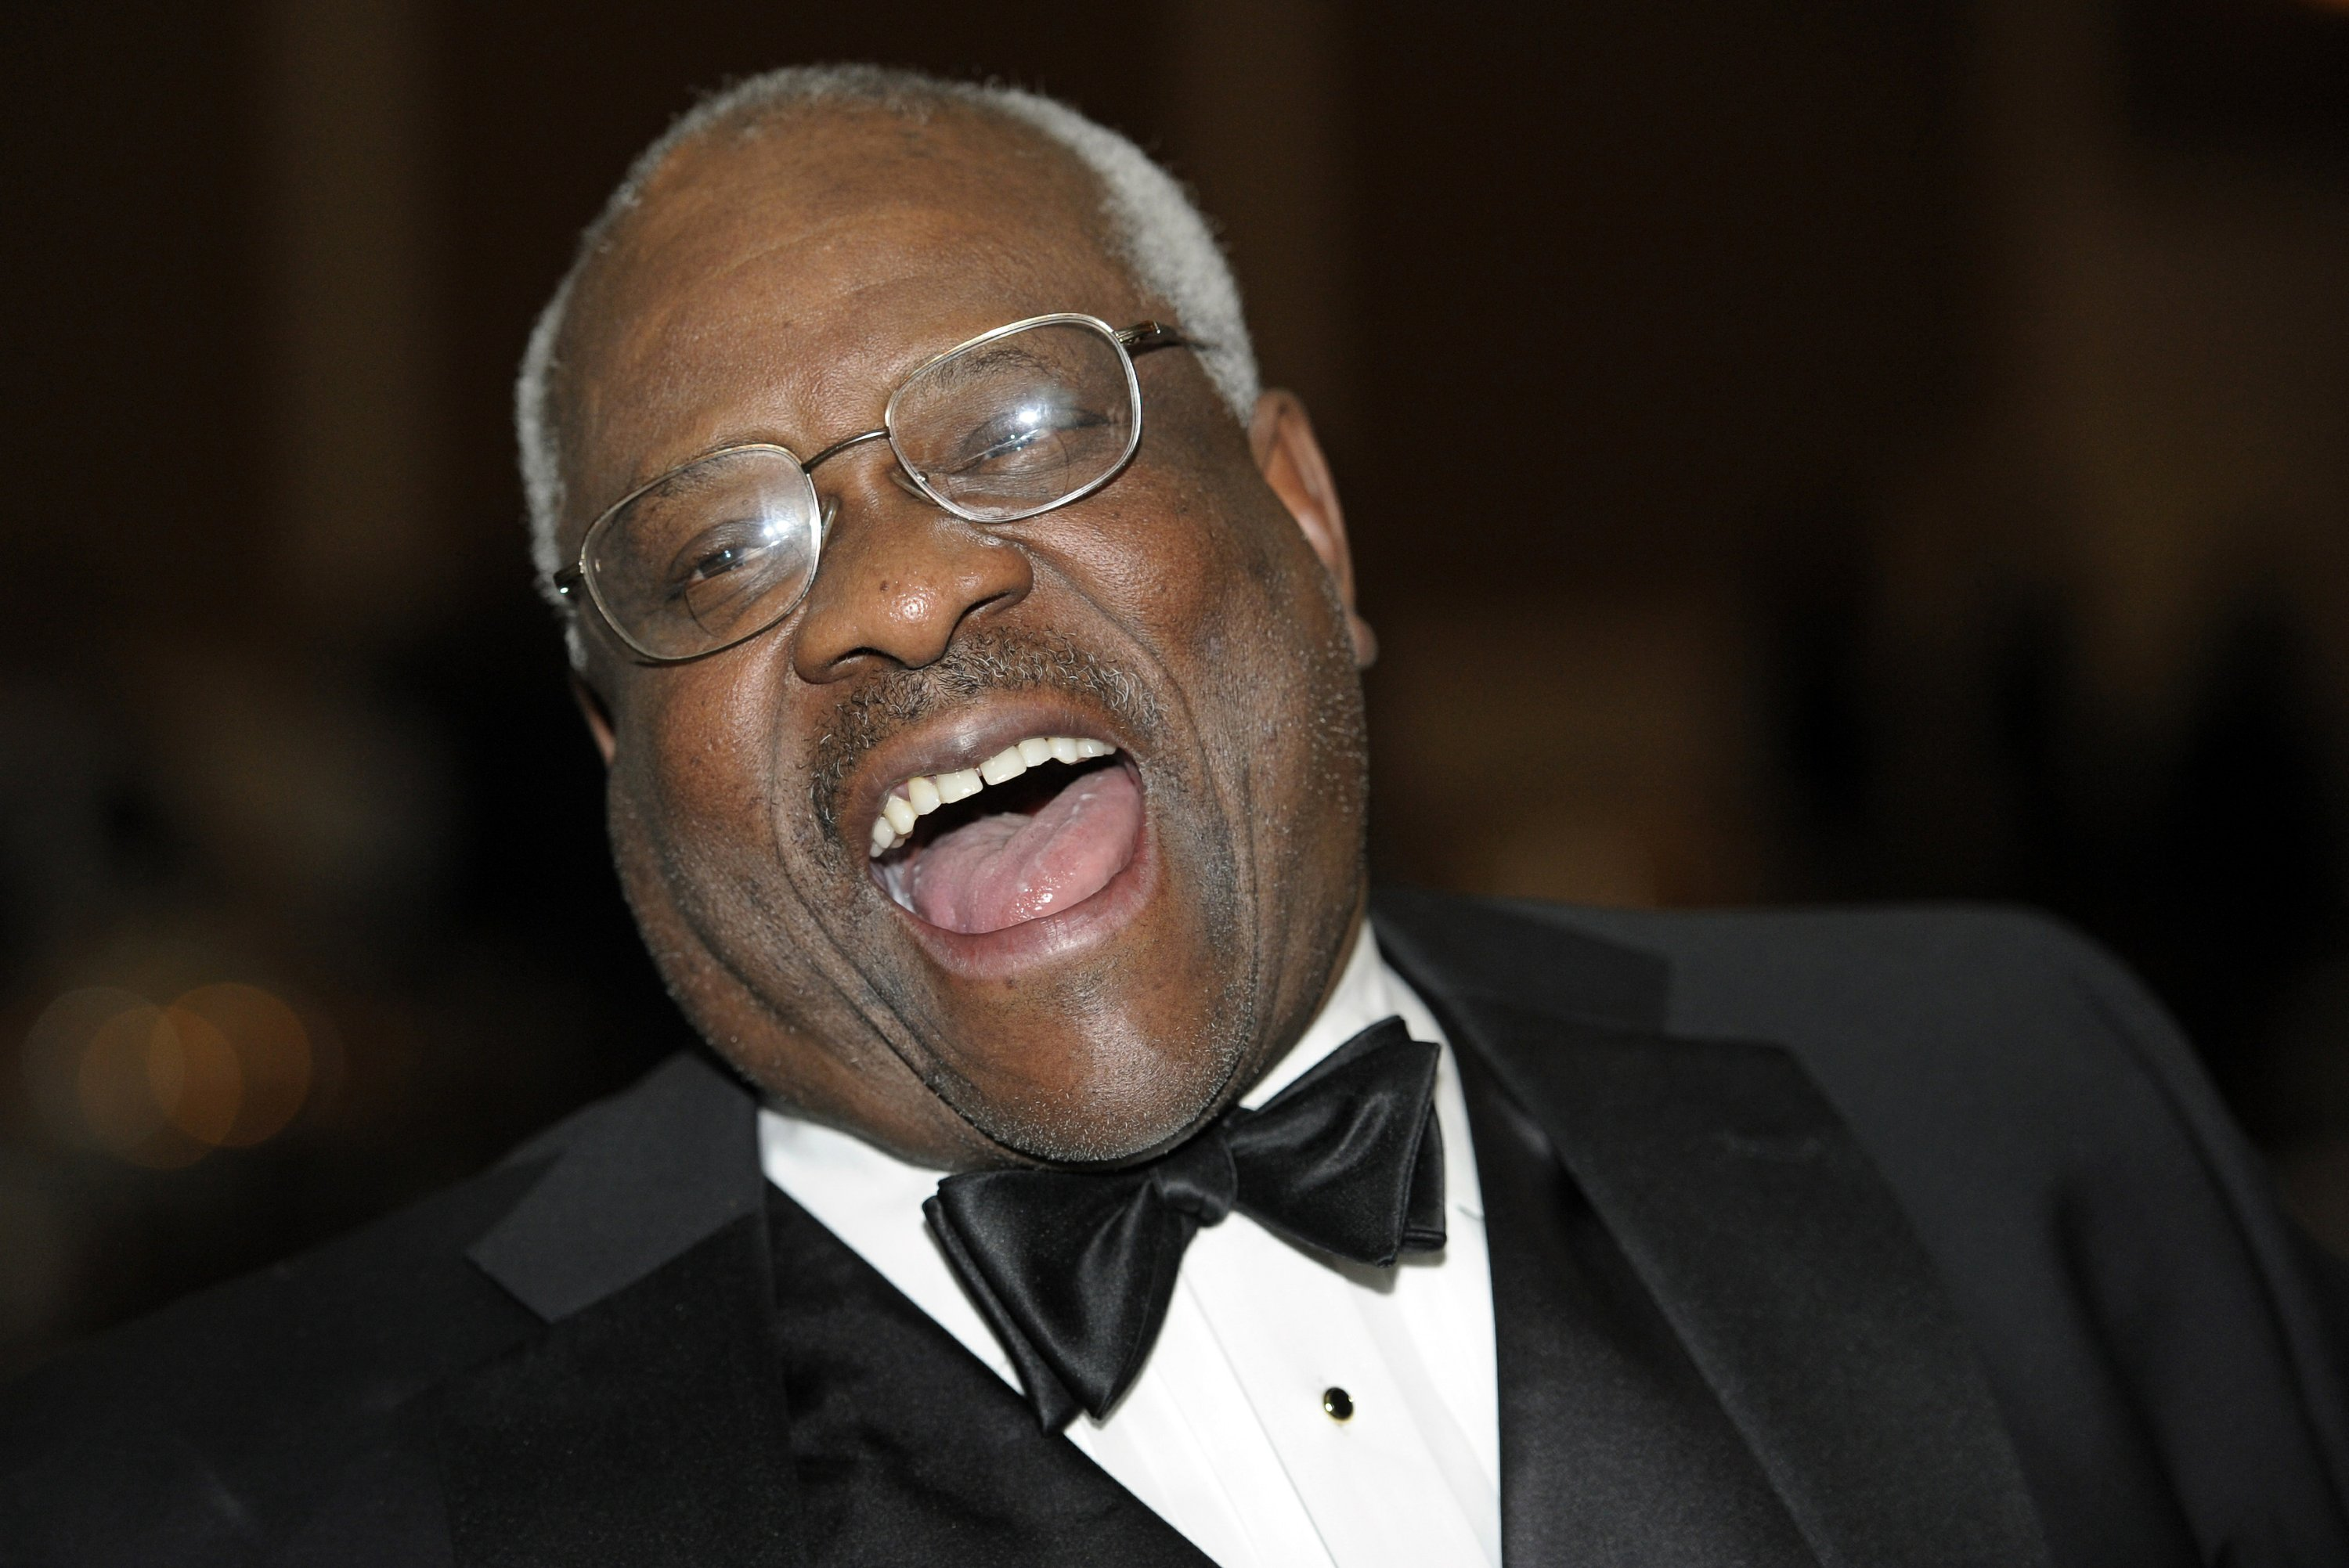 Justice Clarence Thomas' moment may finally have arrived